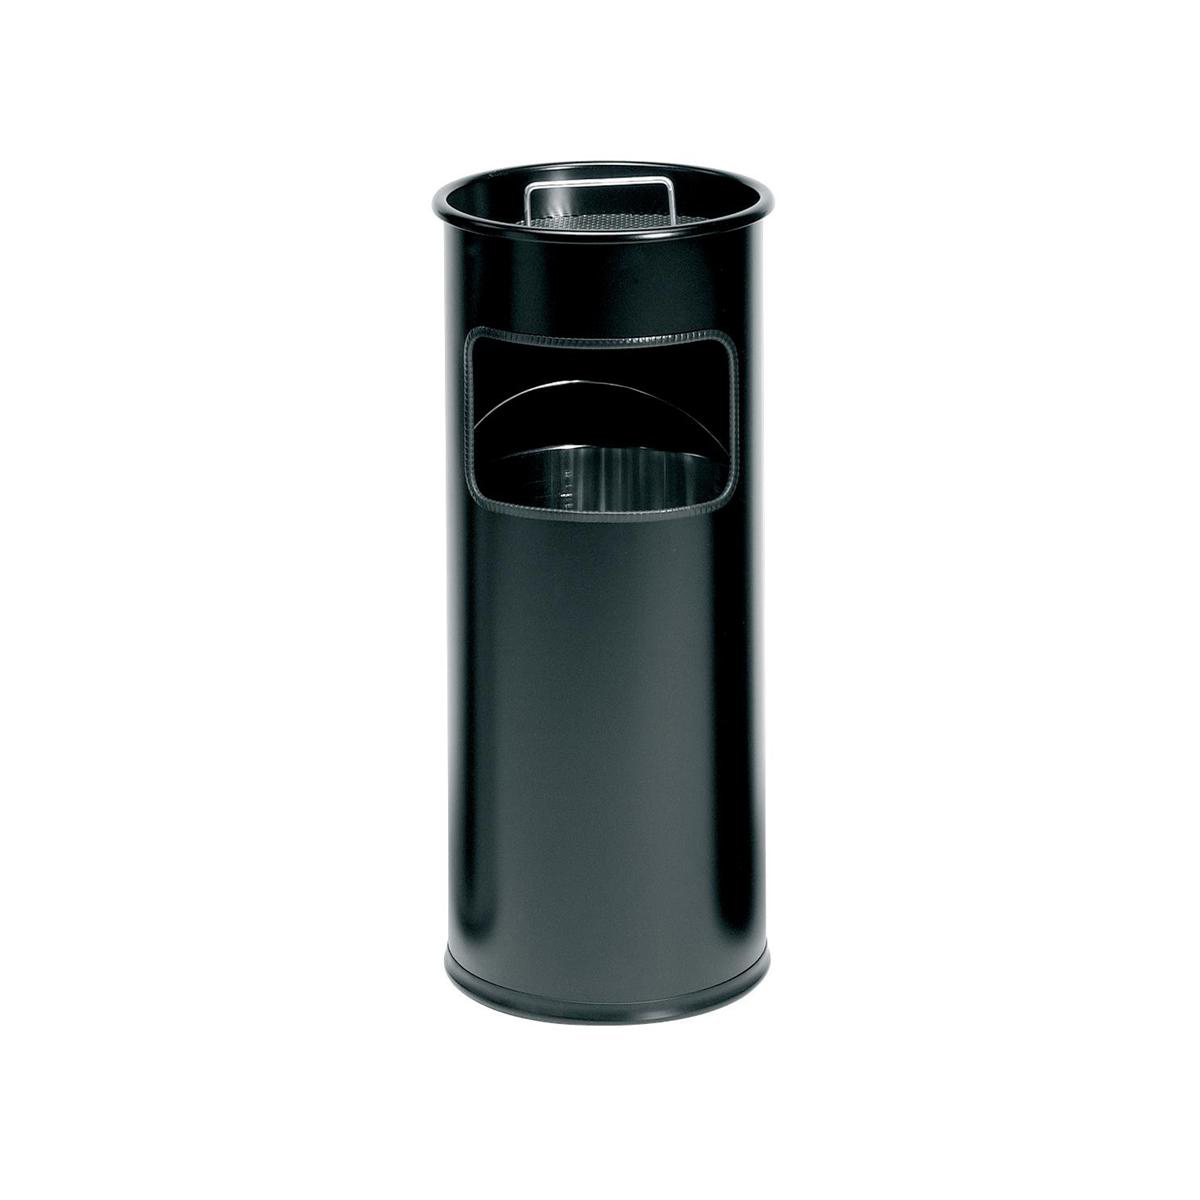 Durable Ashtray Waste Bin with 1.5 Kilos of Silver Sand 17 Litres with 2 Litre Ashtray Black Ref 3330/01